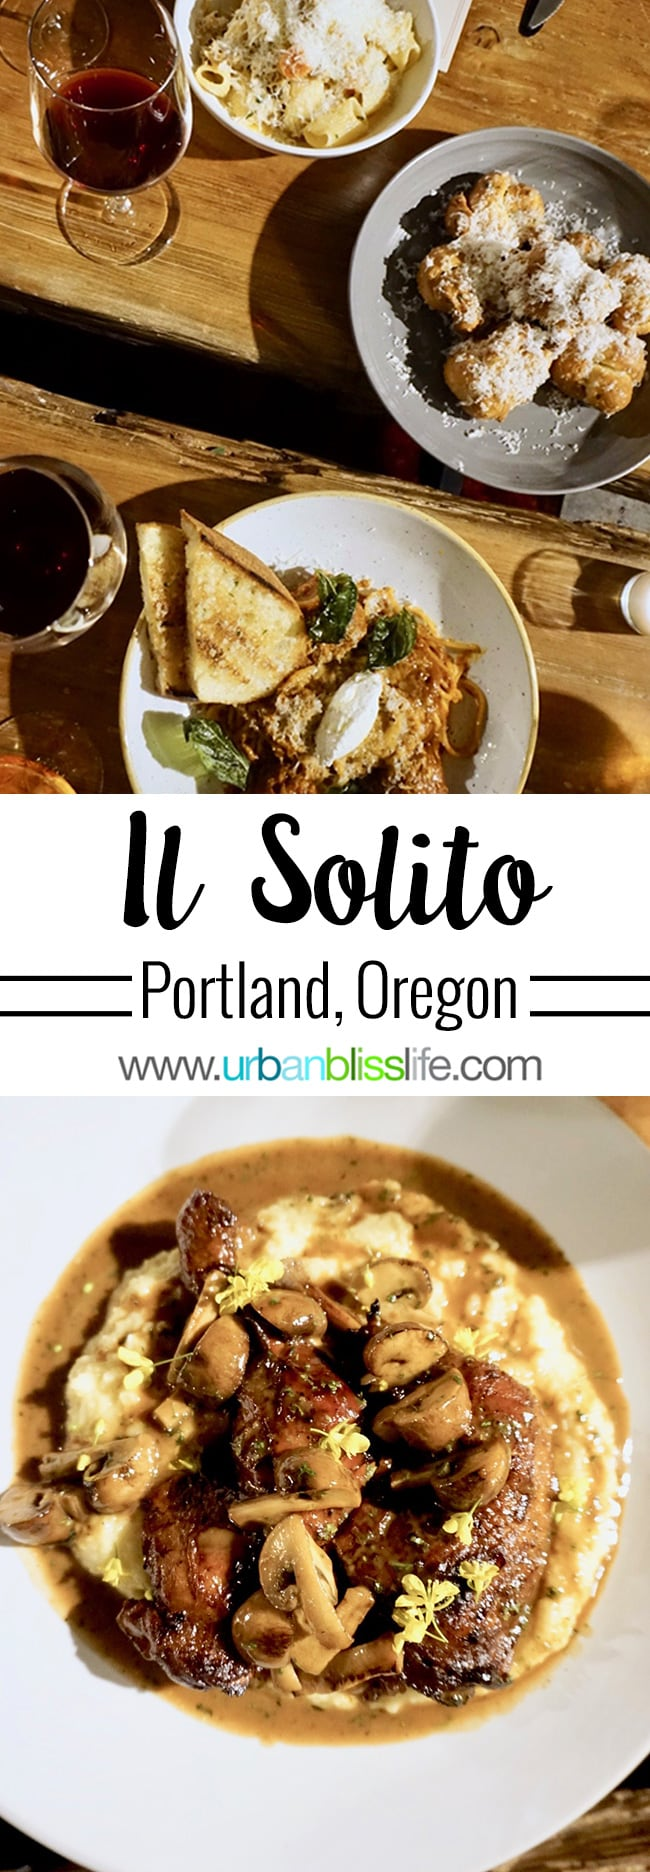 Best Italian restaurants in Portland - Il Solito on UrbanBlissLife.com